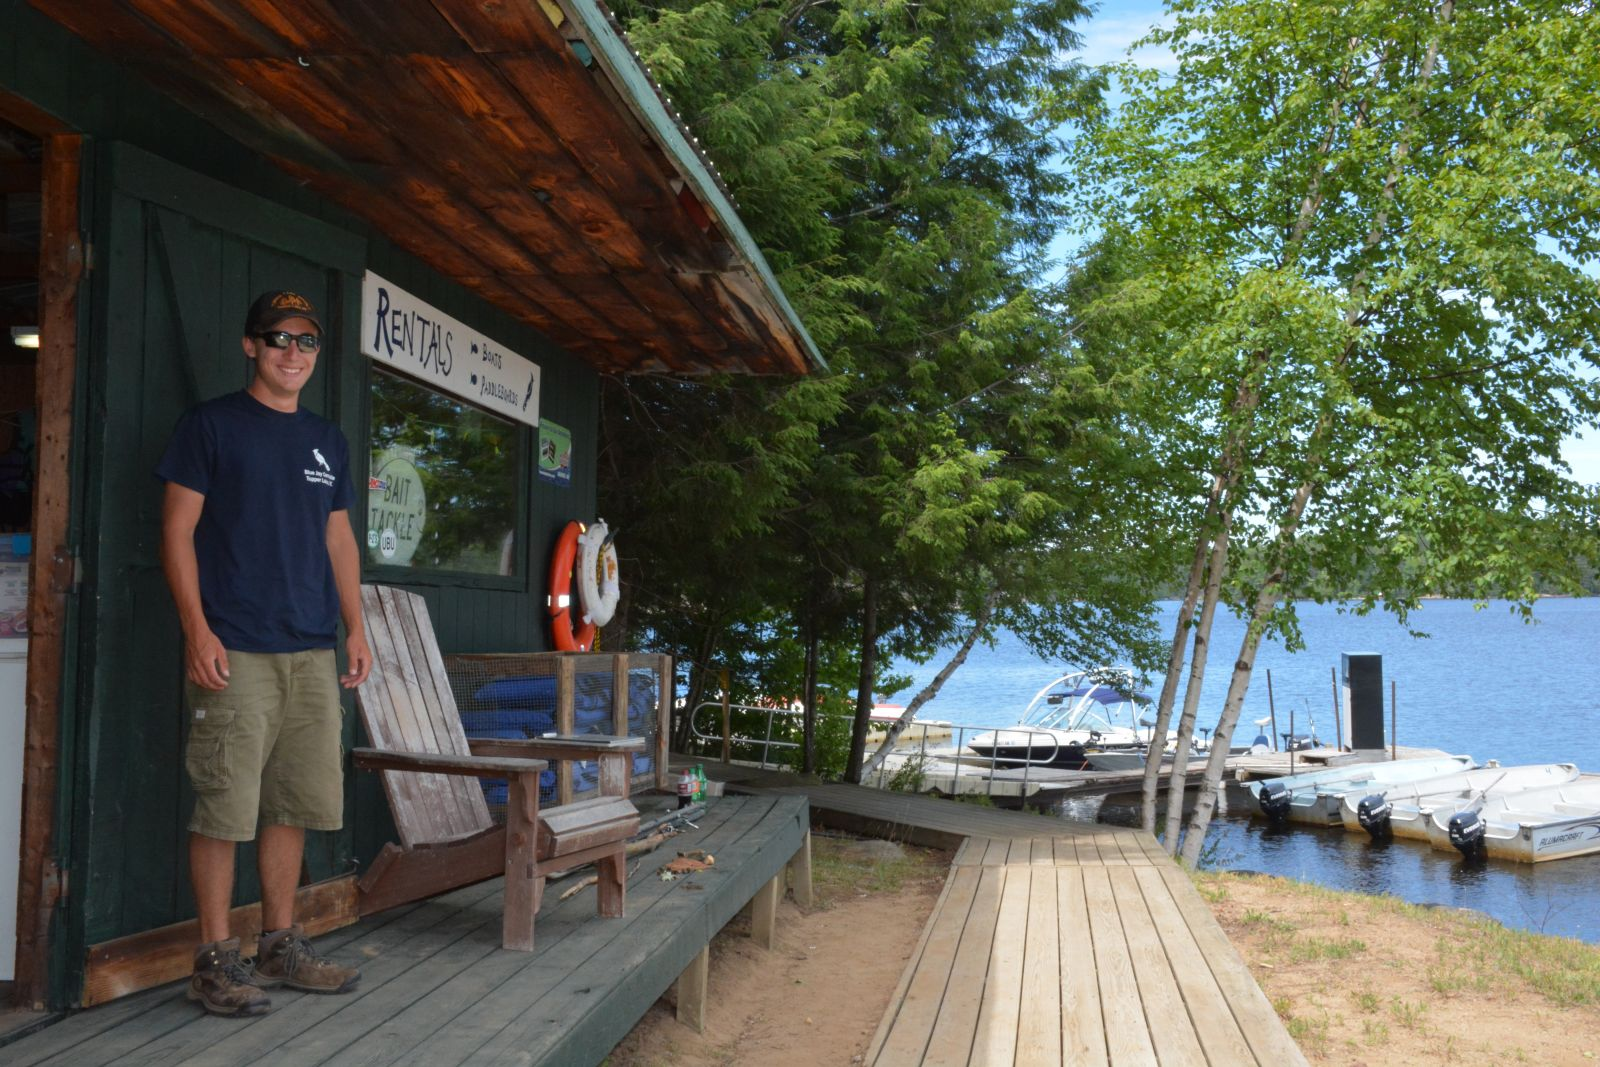 Mitch Harriman, a Blue Jay Campsite employee, stands in front of the marina's boathouse before heading down to the dock to help customers.